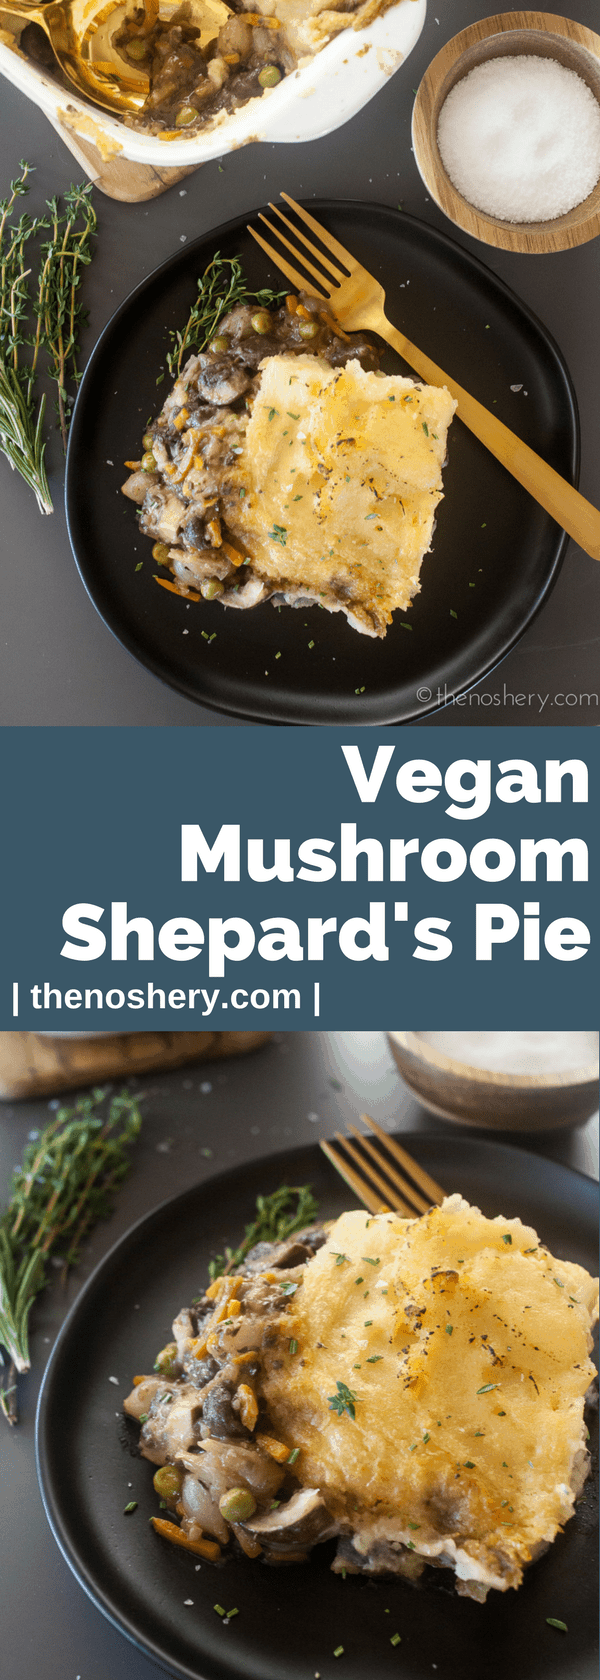 Mushroom Shepherd's Pie | This vegan mushroom shepherd's pie had all the comfort of a traditional shepherd's pie. It's loaded with meaty mushrooms, carrots, onions, and peas in savory gravy. This pie will be loved by all! | The Noshery